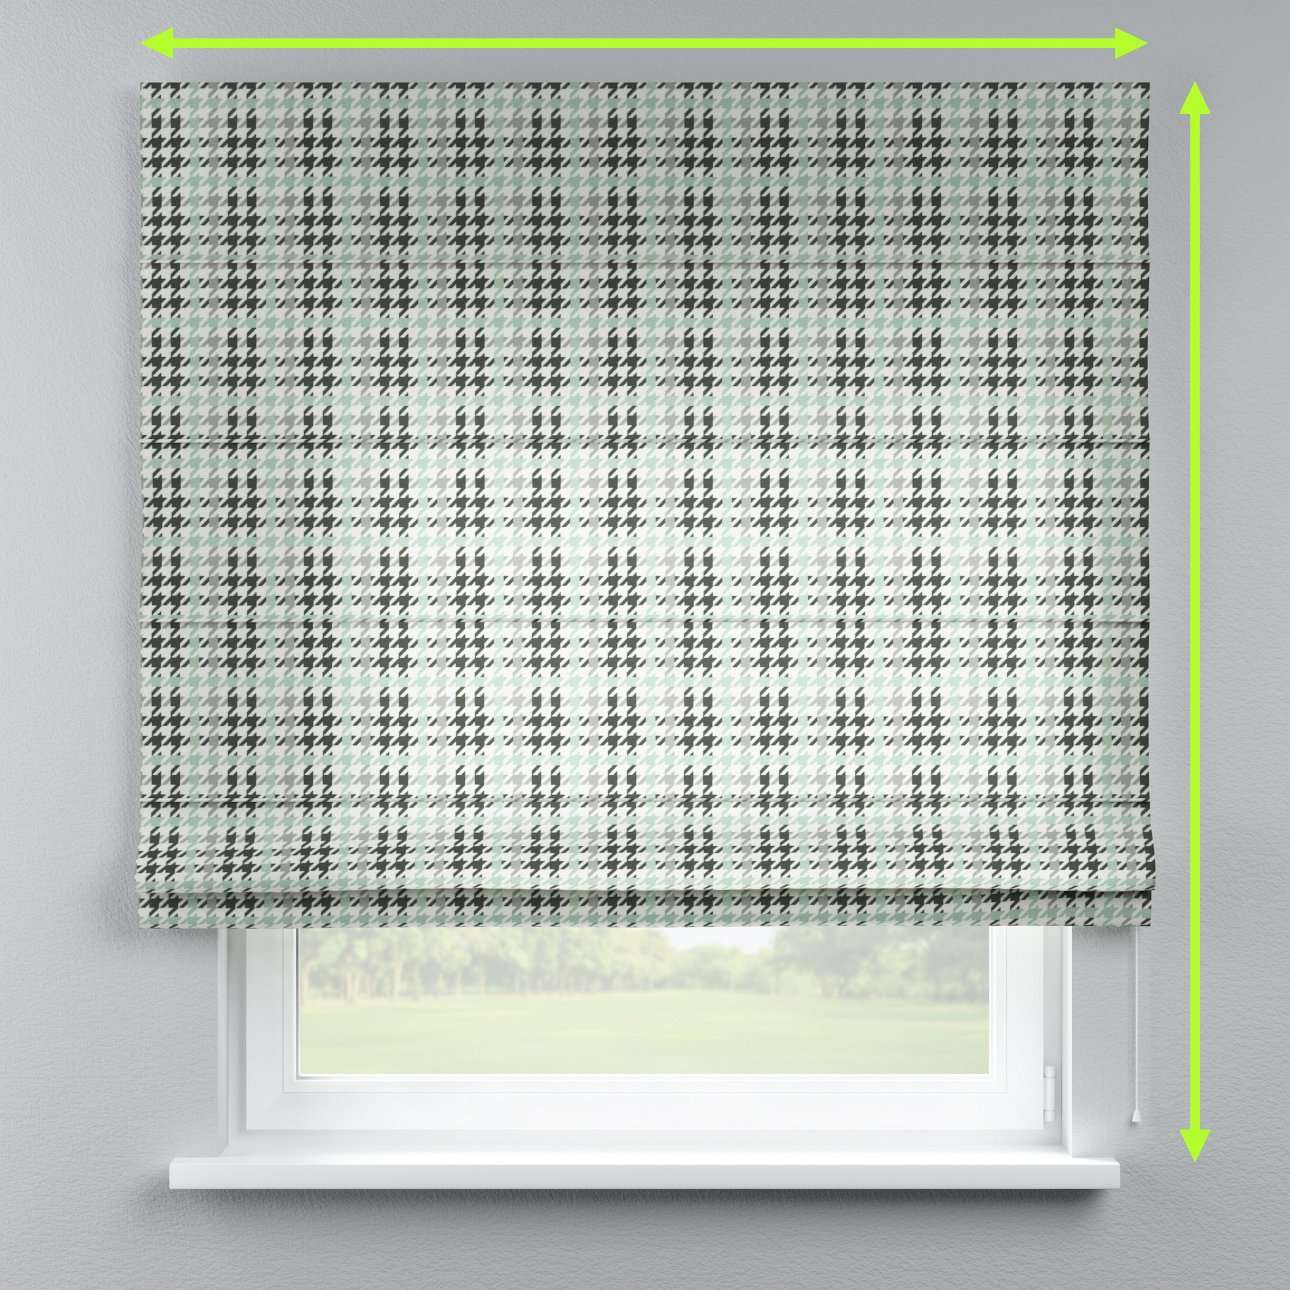 Capri roman blind in collection Brooklyn, fabric: 137-77